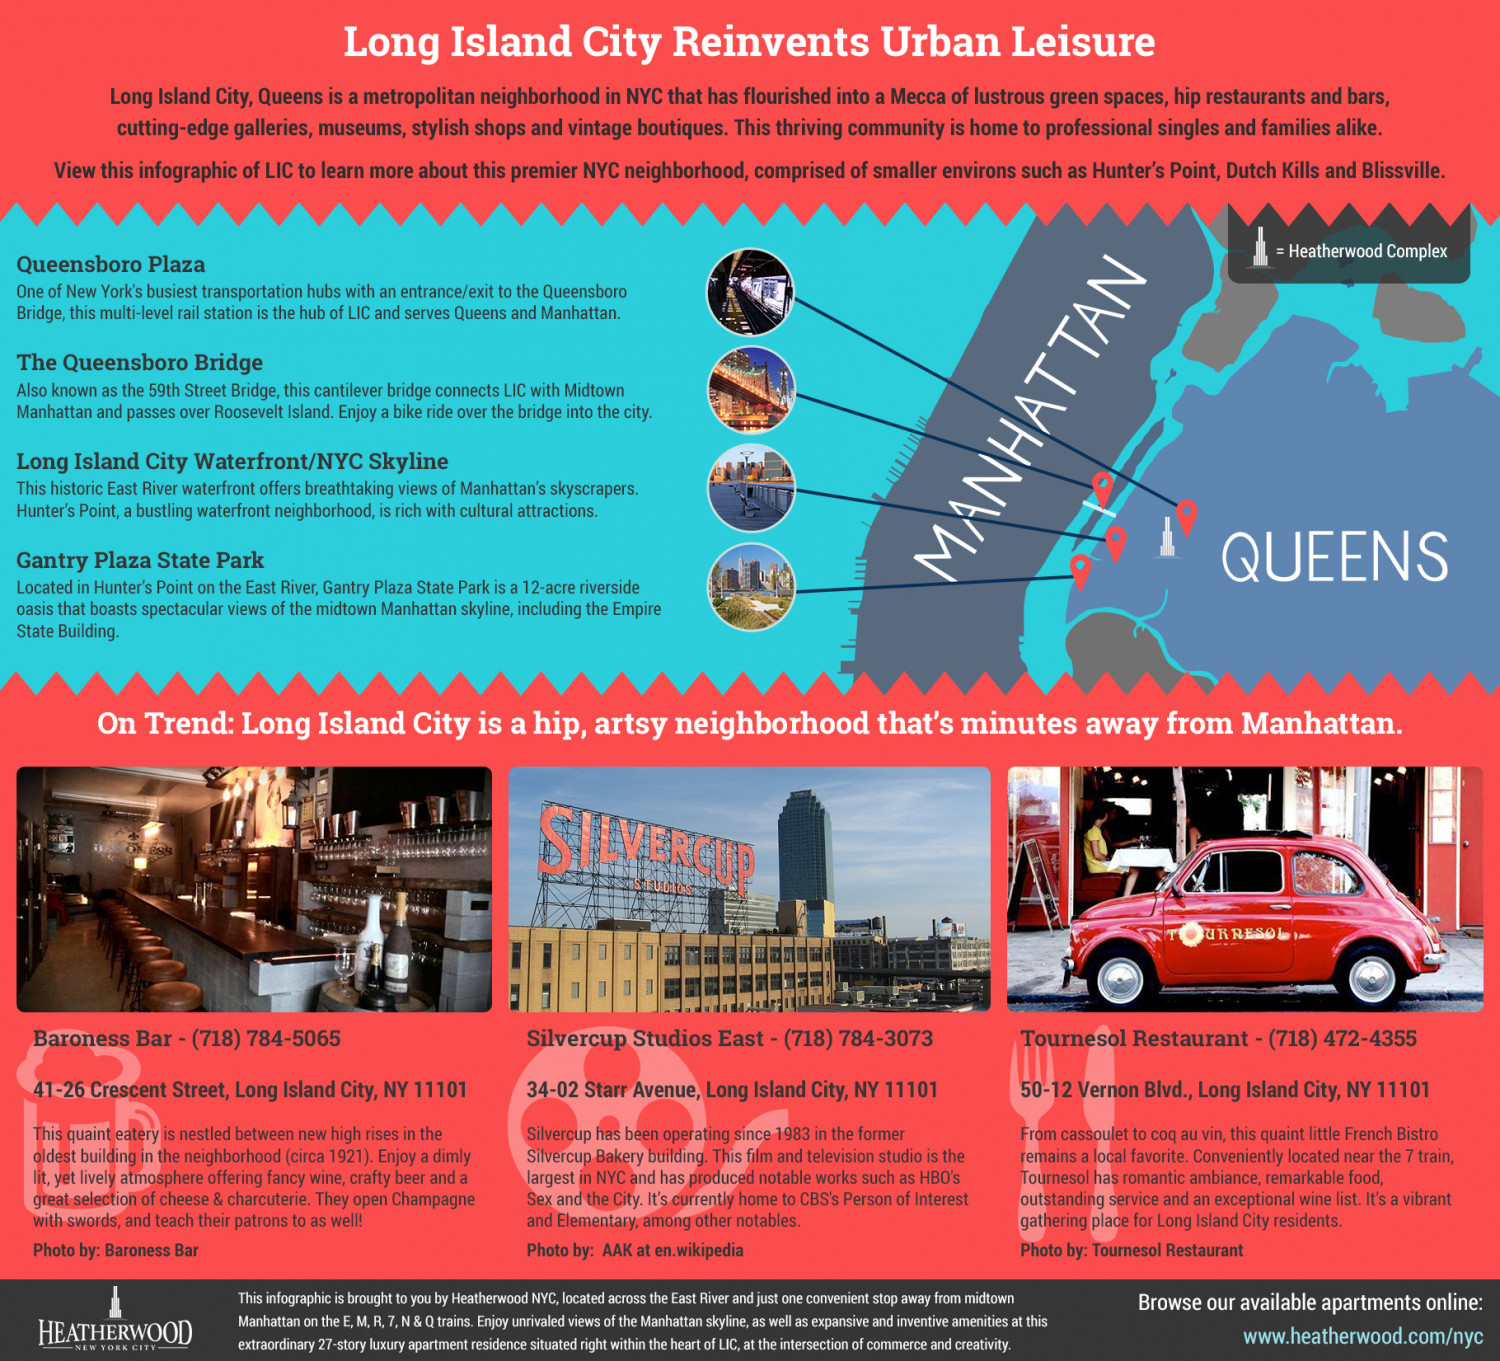 Long Island City Reinvents Urban Leisure Infographic